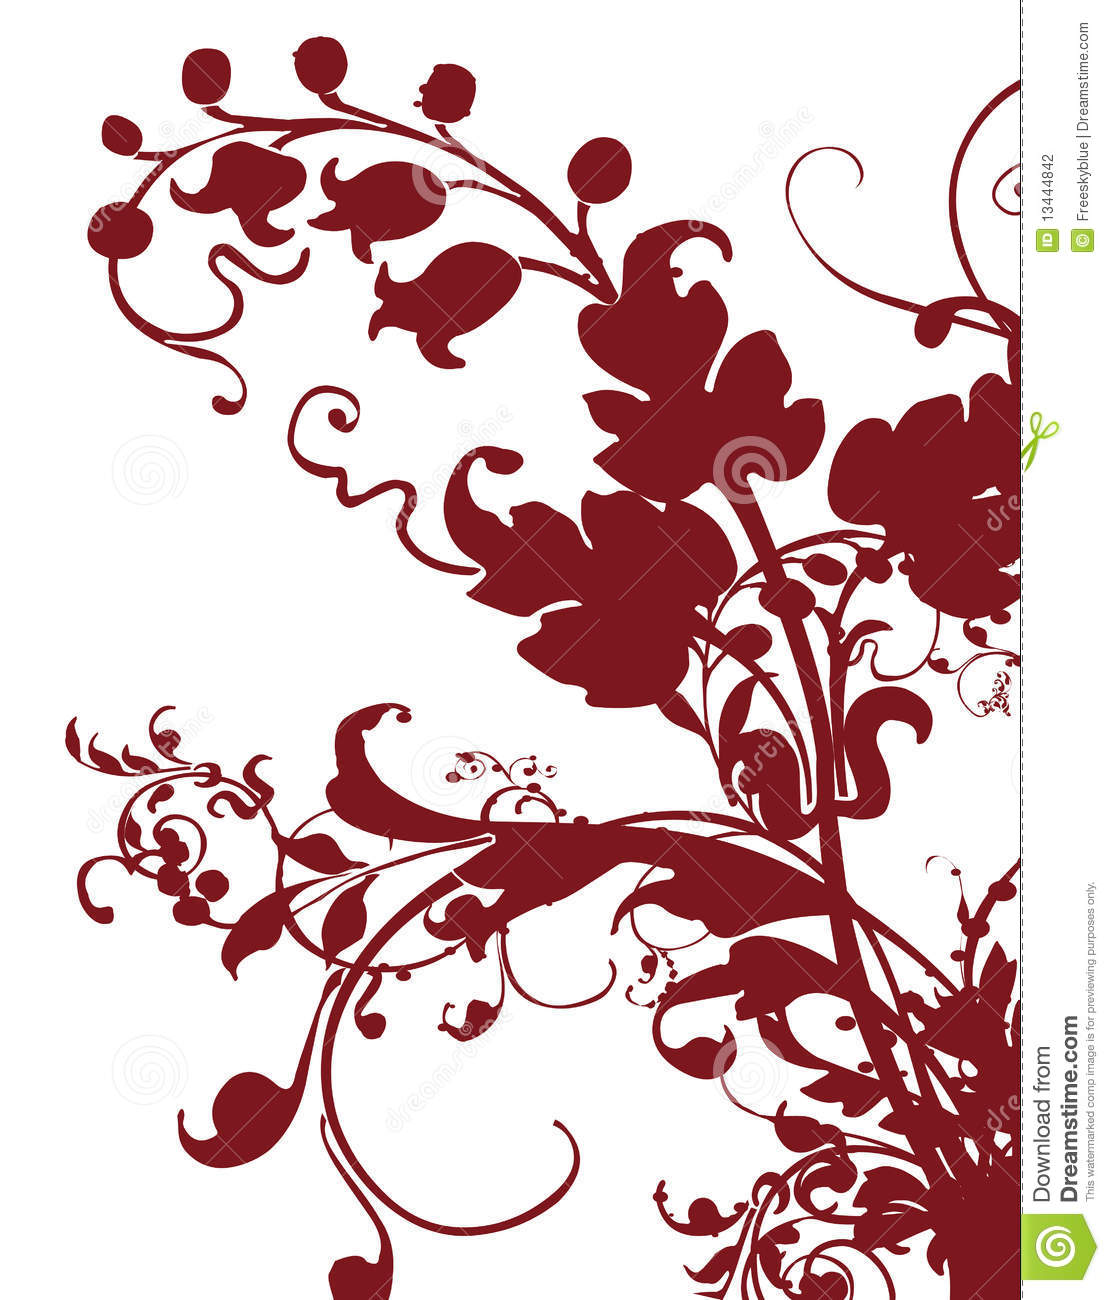 Brown Flower Pattern Silhouette Stock Photography - Image: 13444842